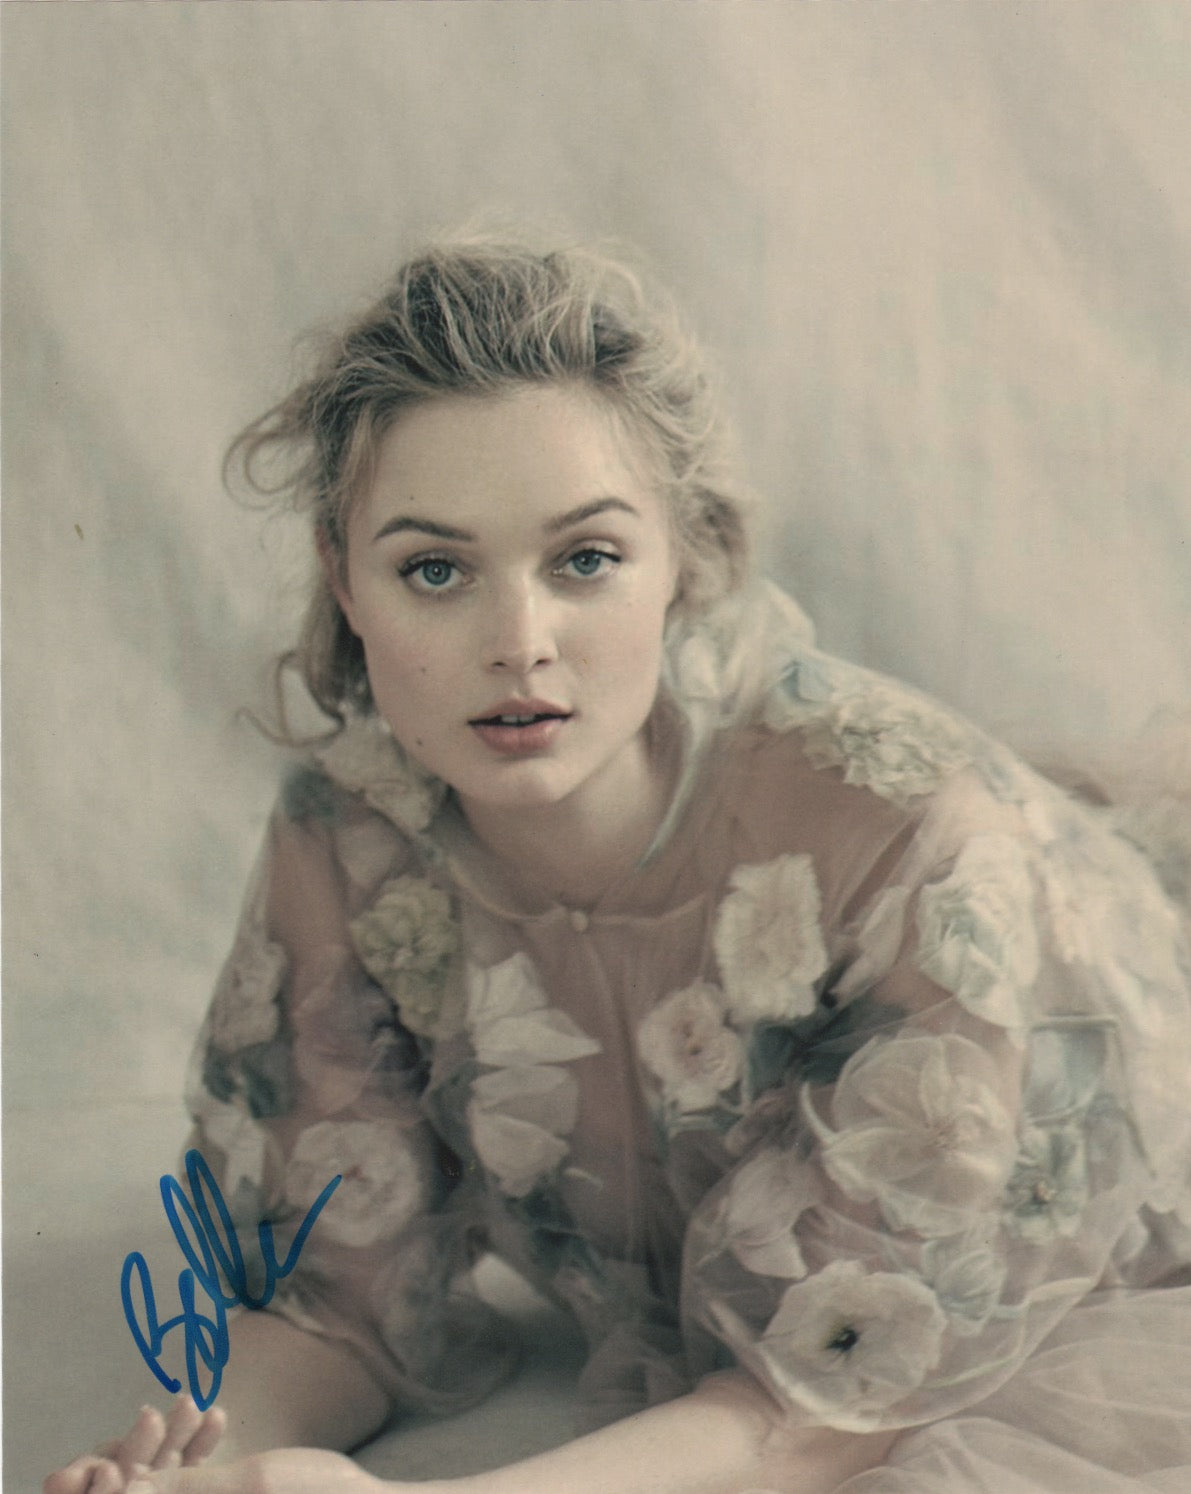 Bella Heathcote Sexy Signed Autograph 8x10 Photo - Outlaw Hobbies Authentic Autographs